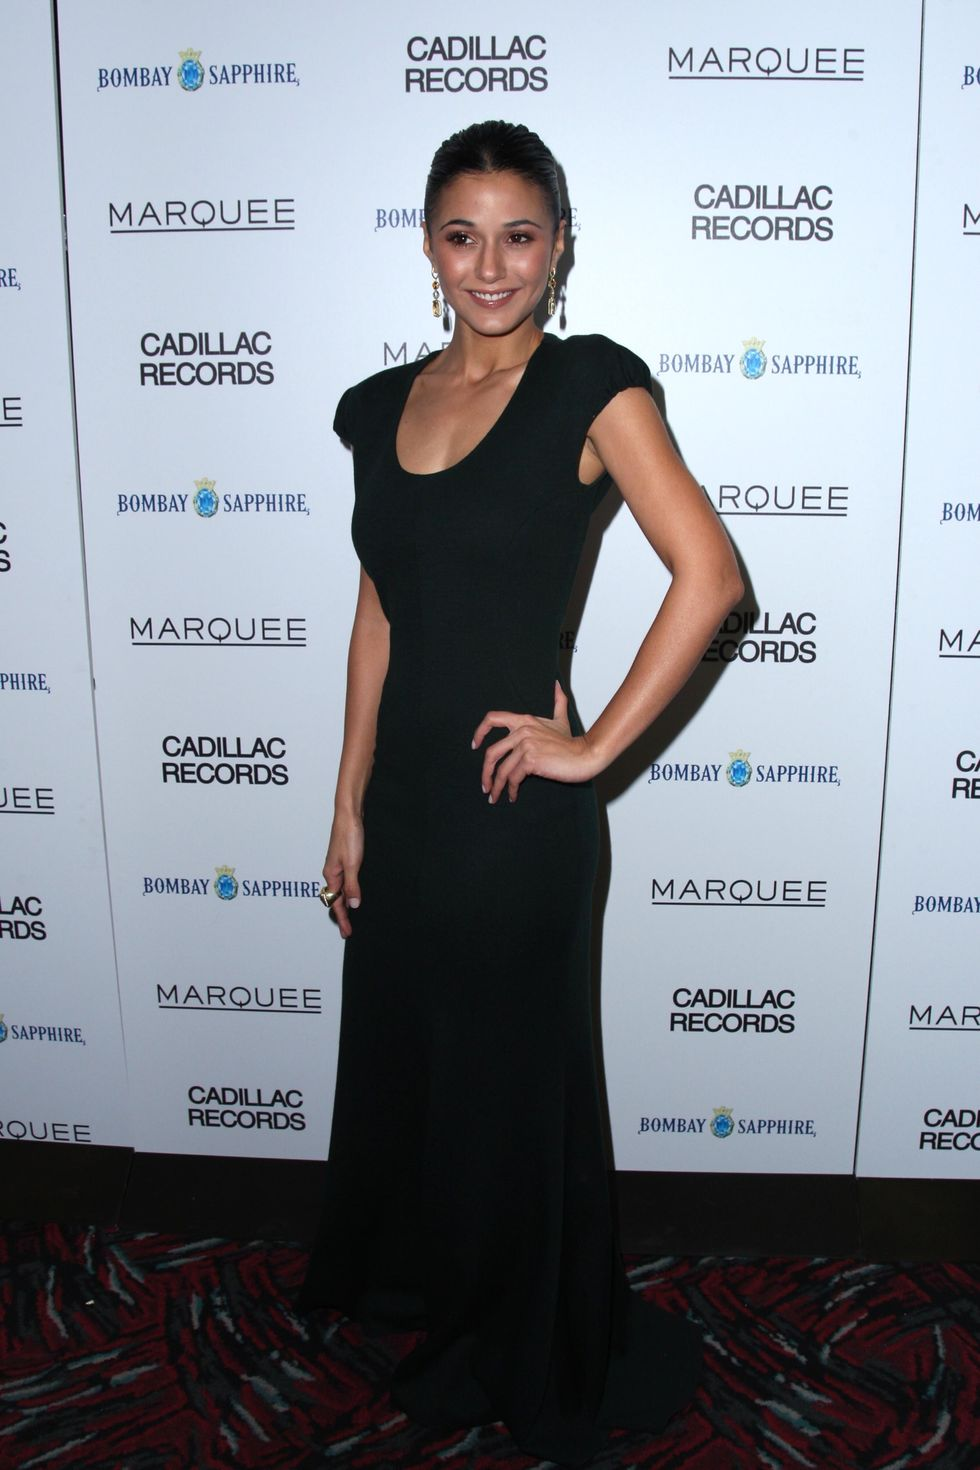 emmanuelle-chriqui-cadillac-records-premiere-in-new-york-city-01